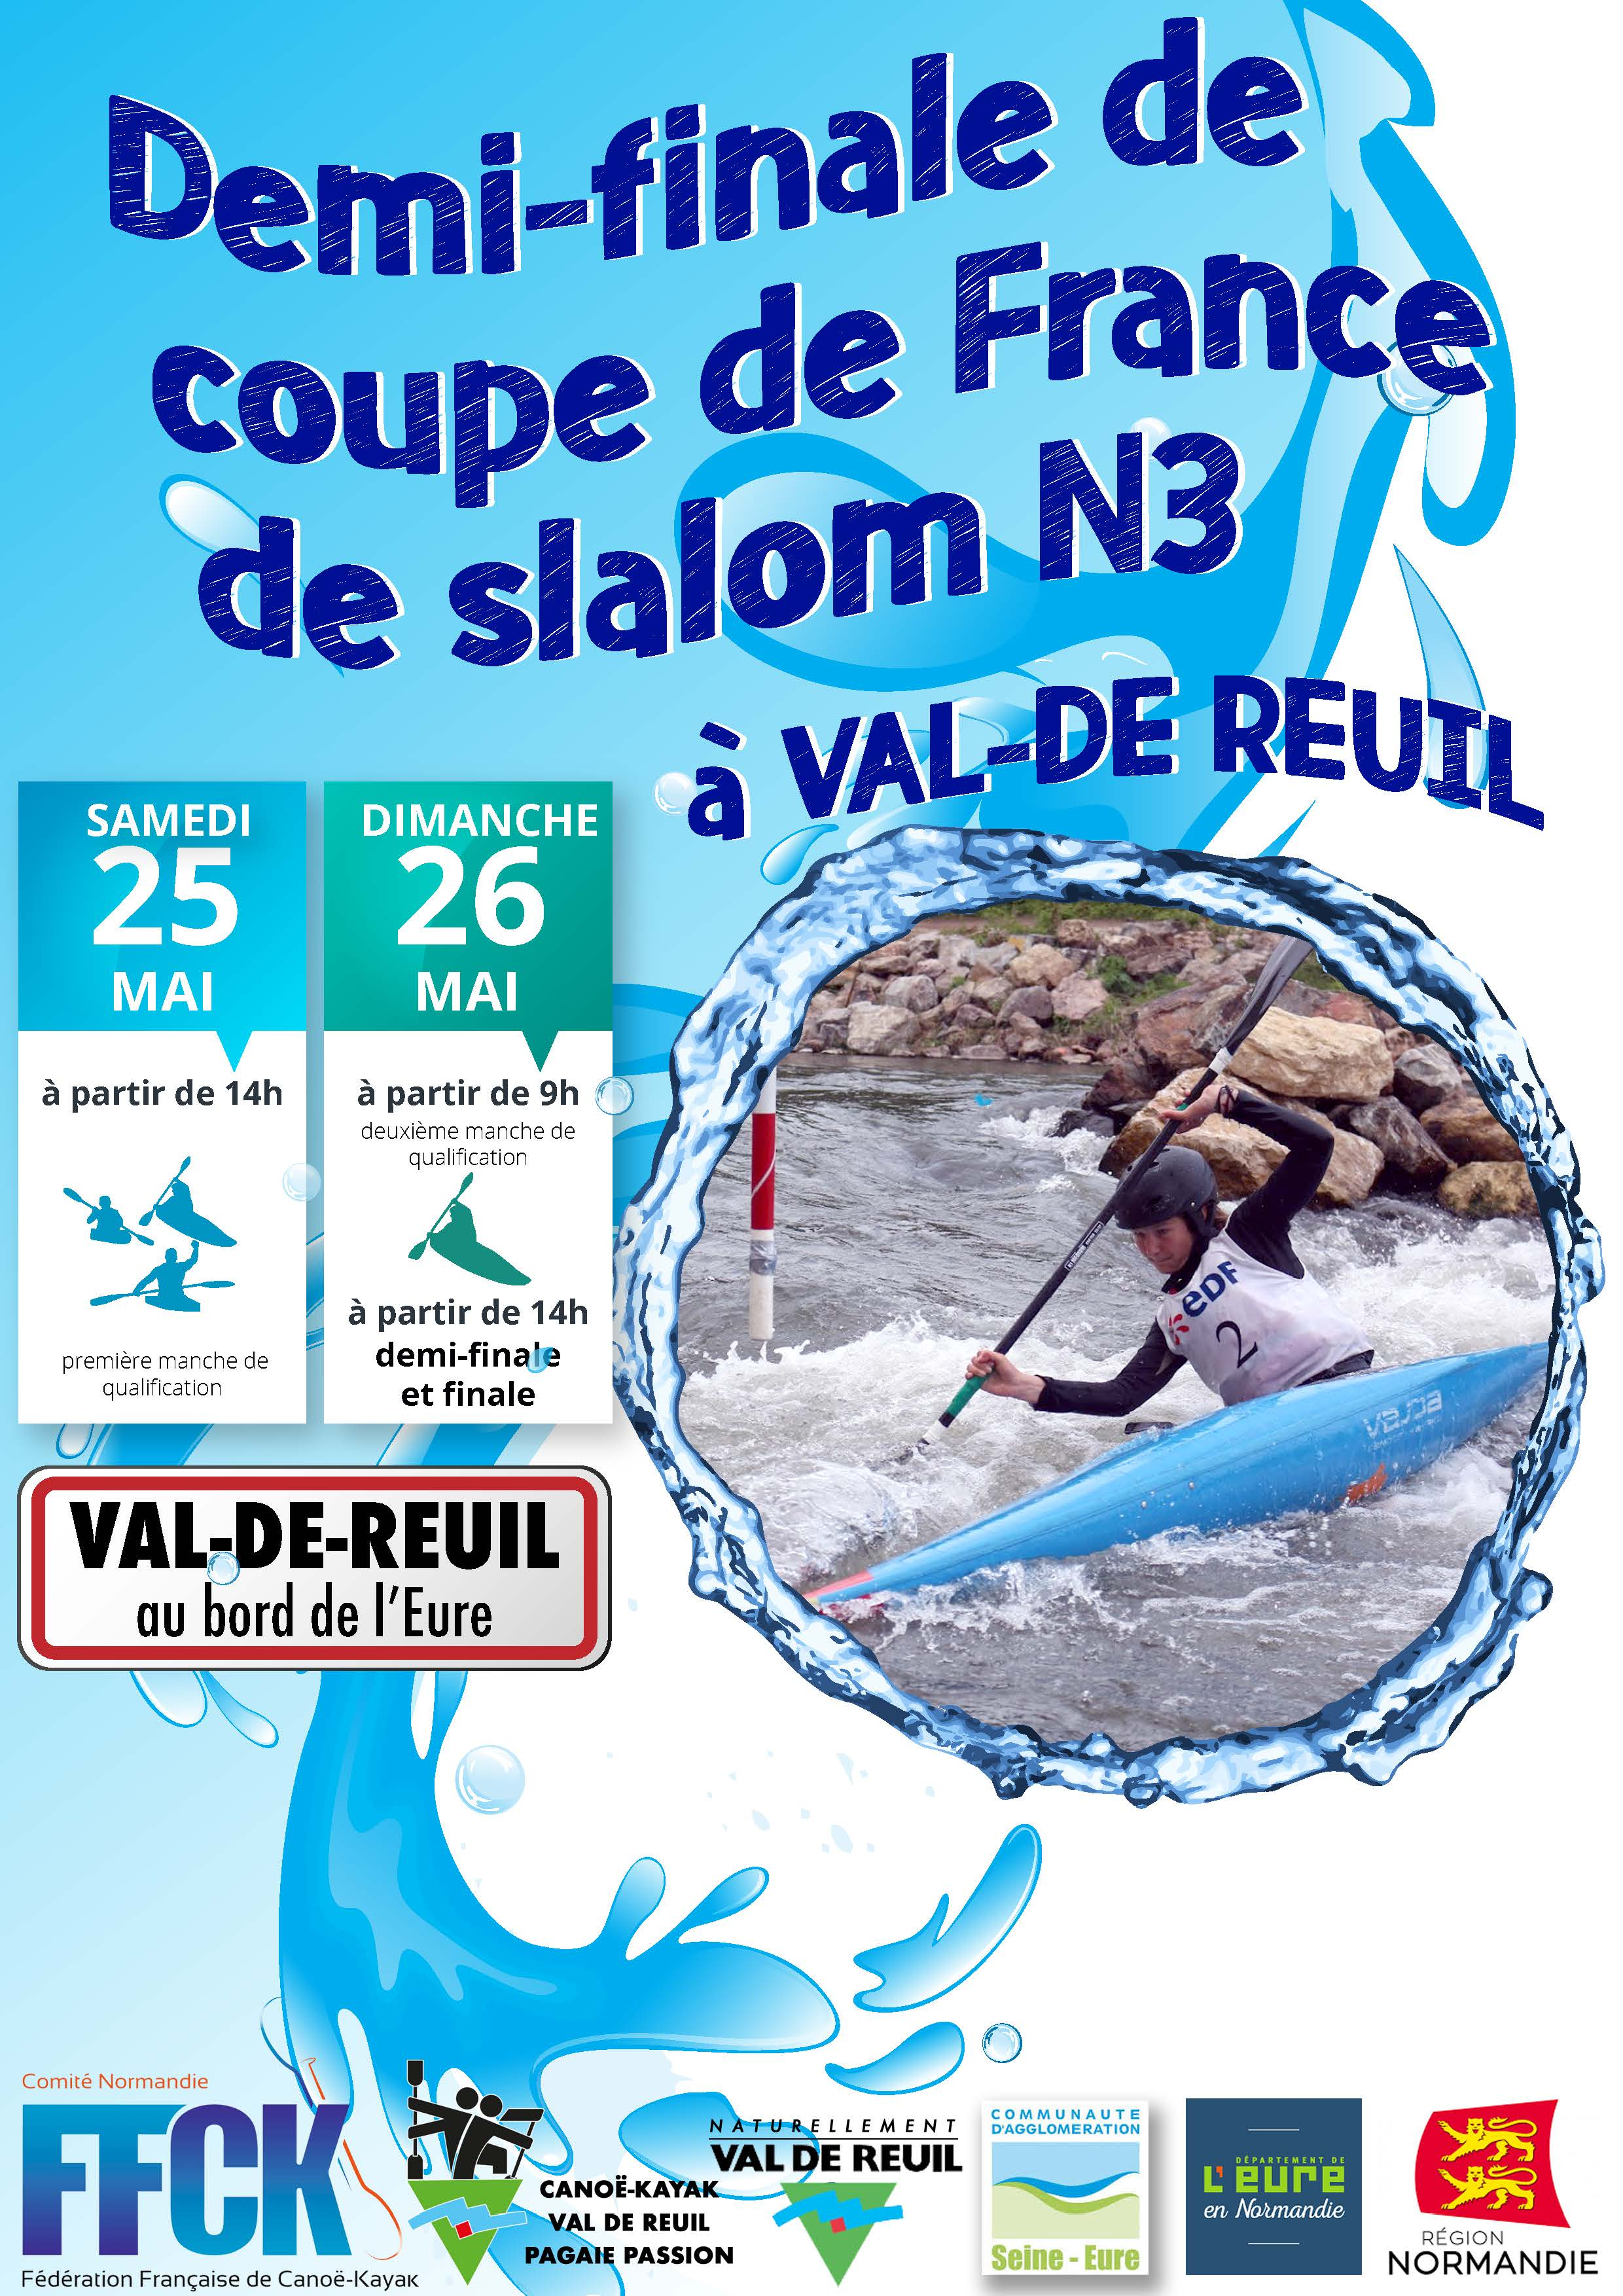 Affiche coupe de France slalom N3 kayak